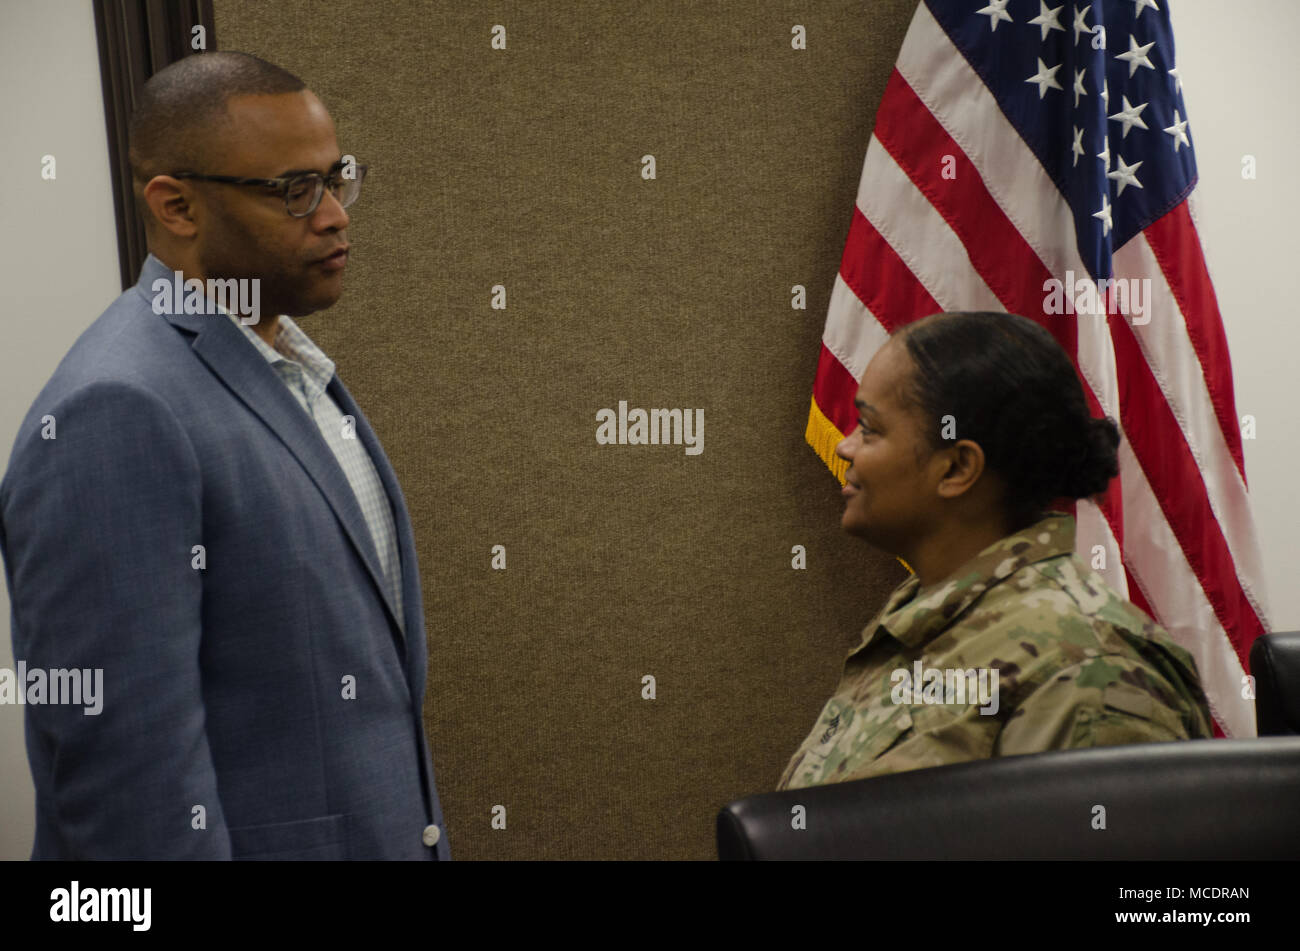 GRAND PRAIRIE, TX - Congressman Marc Veasey, representative of the 33rd District of Texas speaks with Master Sgt. Barbara Bossier, 300th Sustainment Brigade, before the congressman's constituents meeting at Grand Prairie Armed Forces Reserve Complex, Grand Prairie, Texas, February 20, 2018.  The congressman held an open forum attended by Soldiers, Marines and family members to talk about various community issues and how they personally affect members of the military's reserve units. (U.S. Army Reserve photo by Sgt. Raymond Maldonado, 206th Broadcast Operations Detachment/Released) - Stock Image